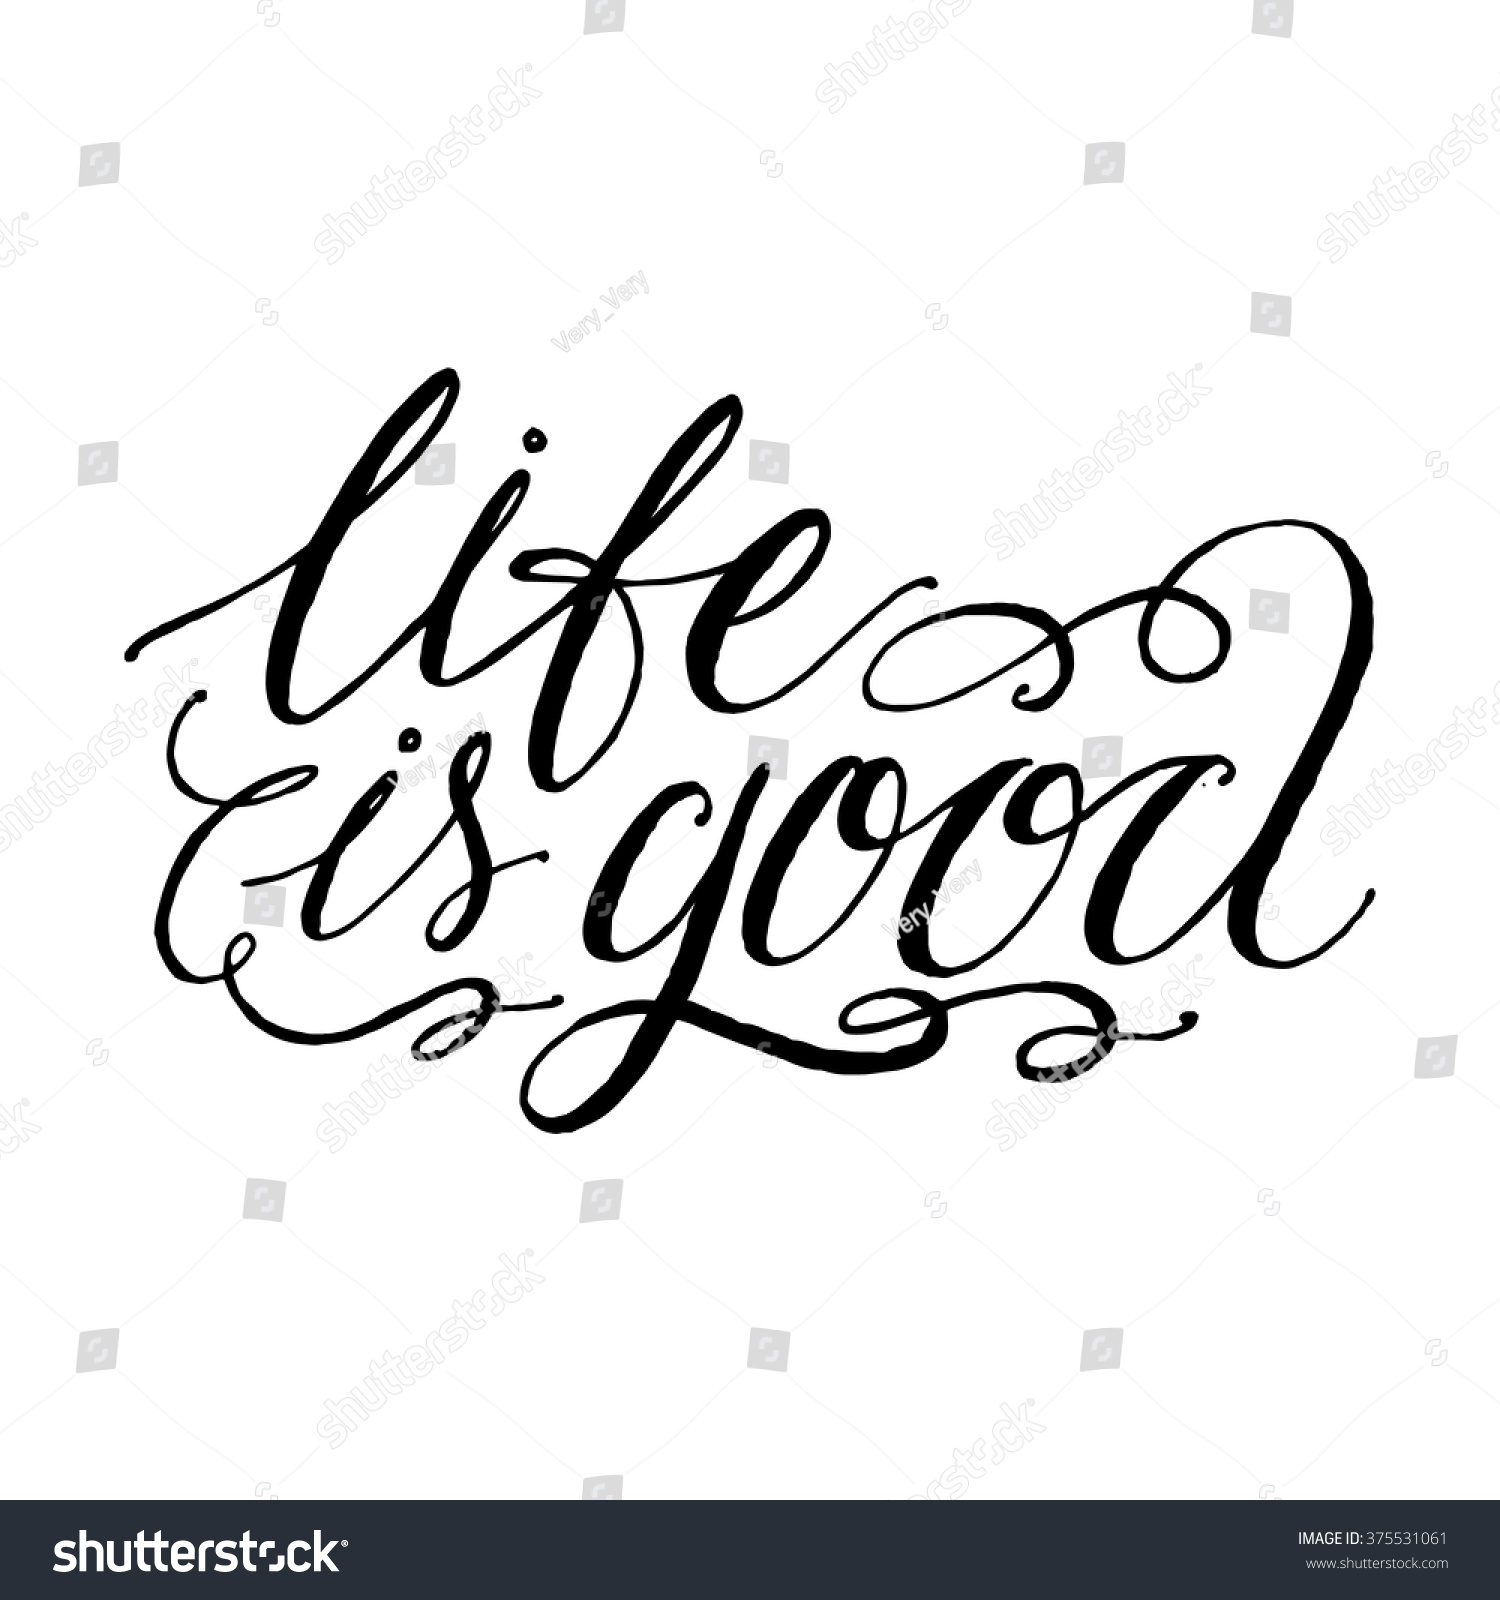 Life Good Inspirational Motivational Quotes Handwritten Stock Vector Royalty Free 375531061